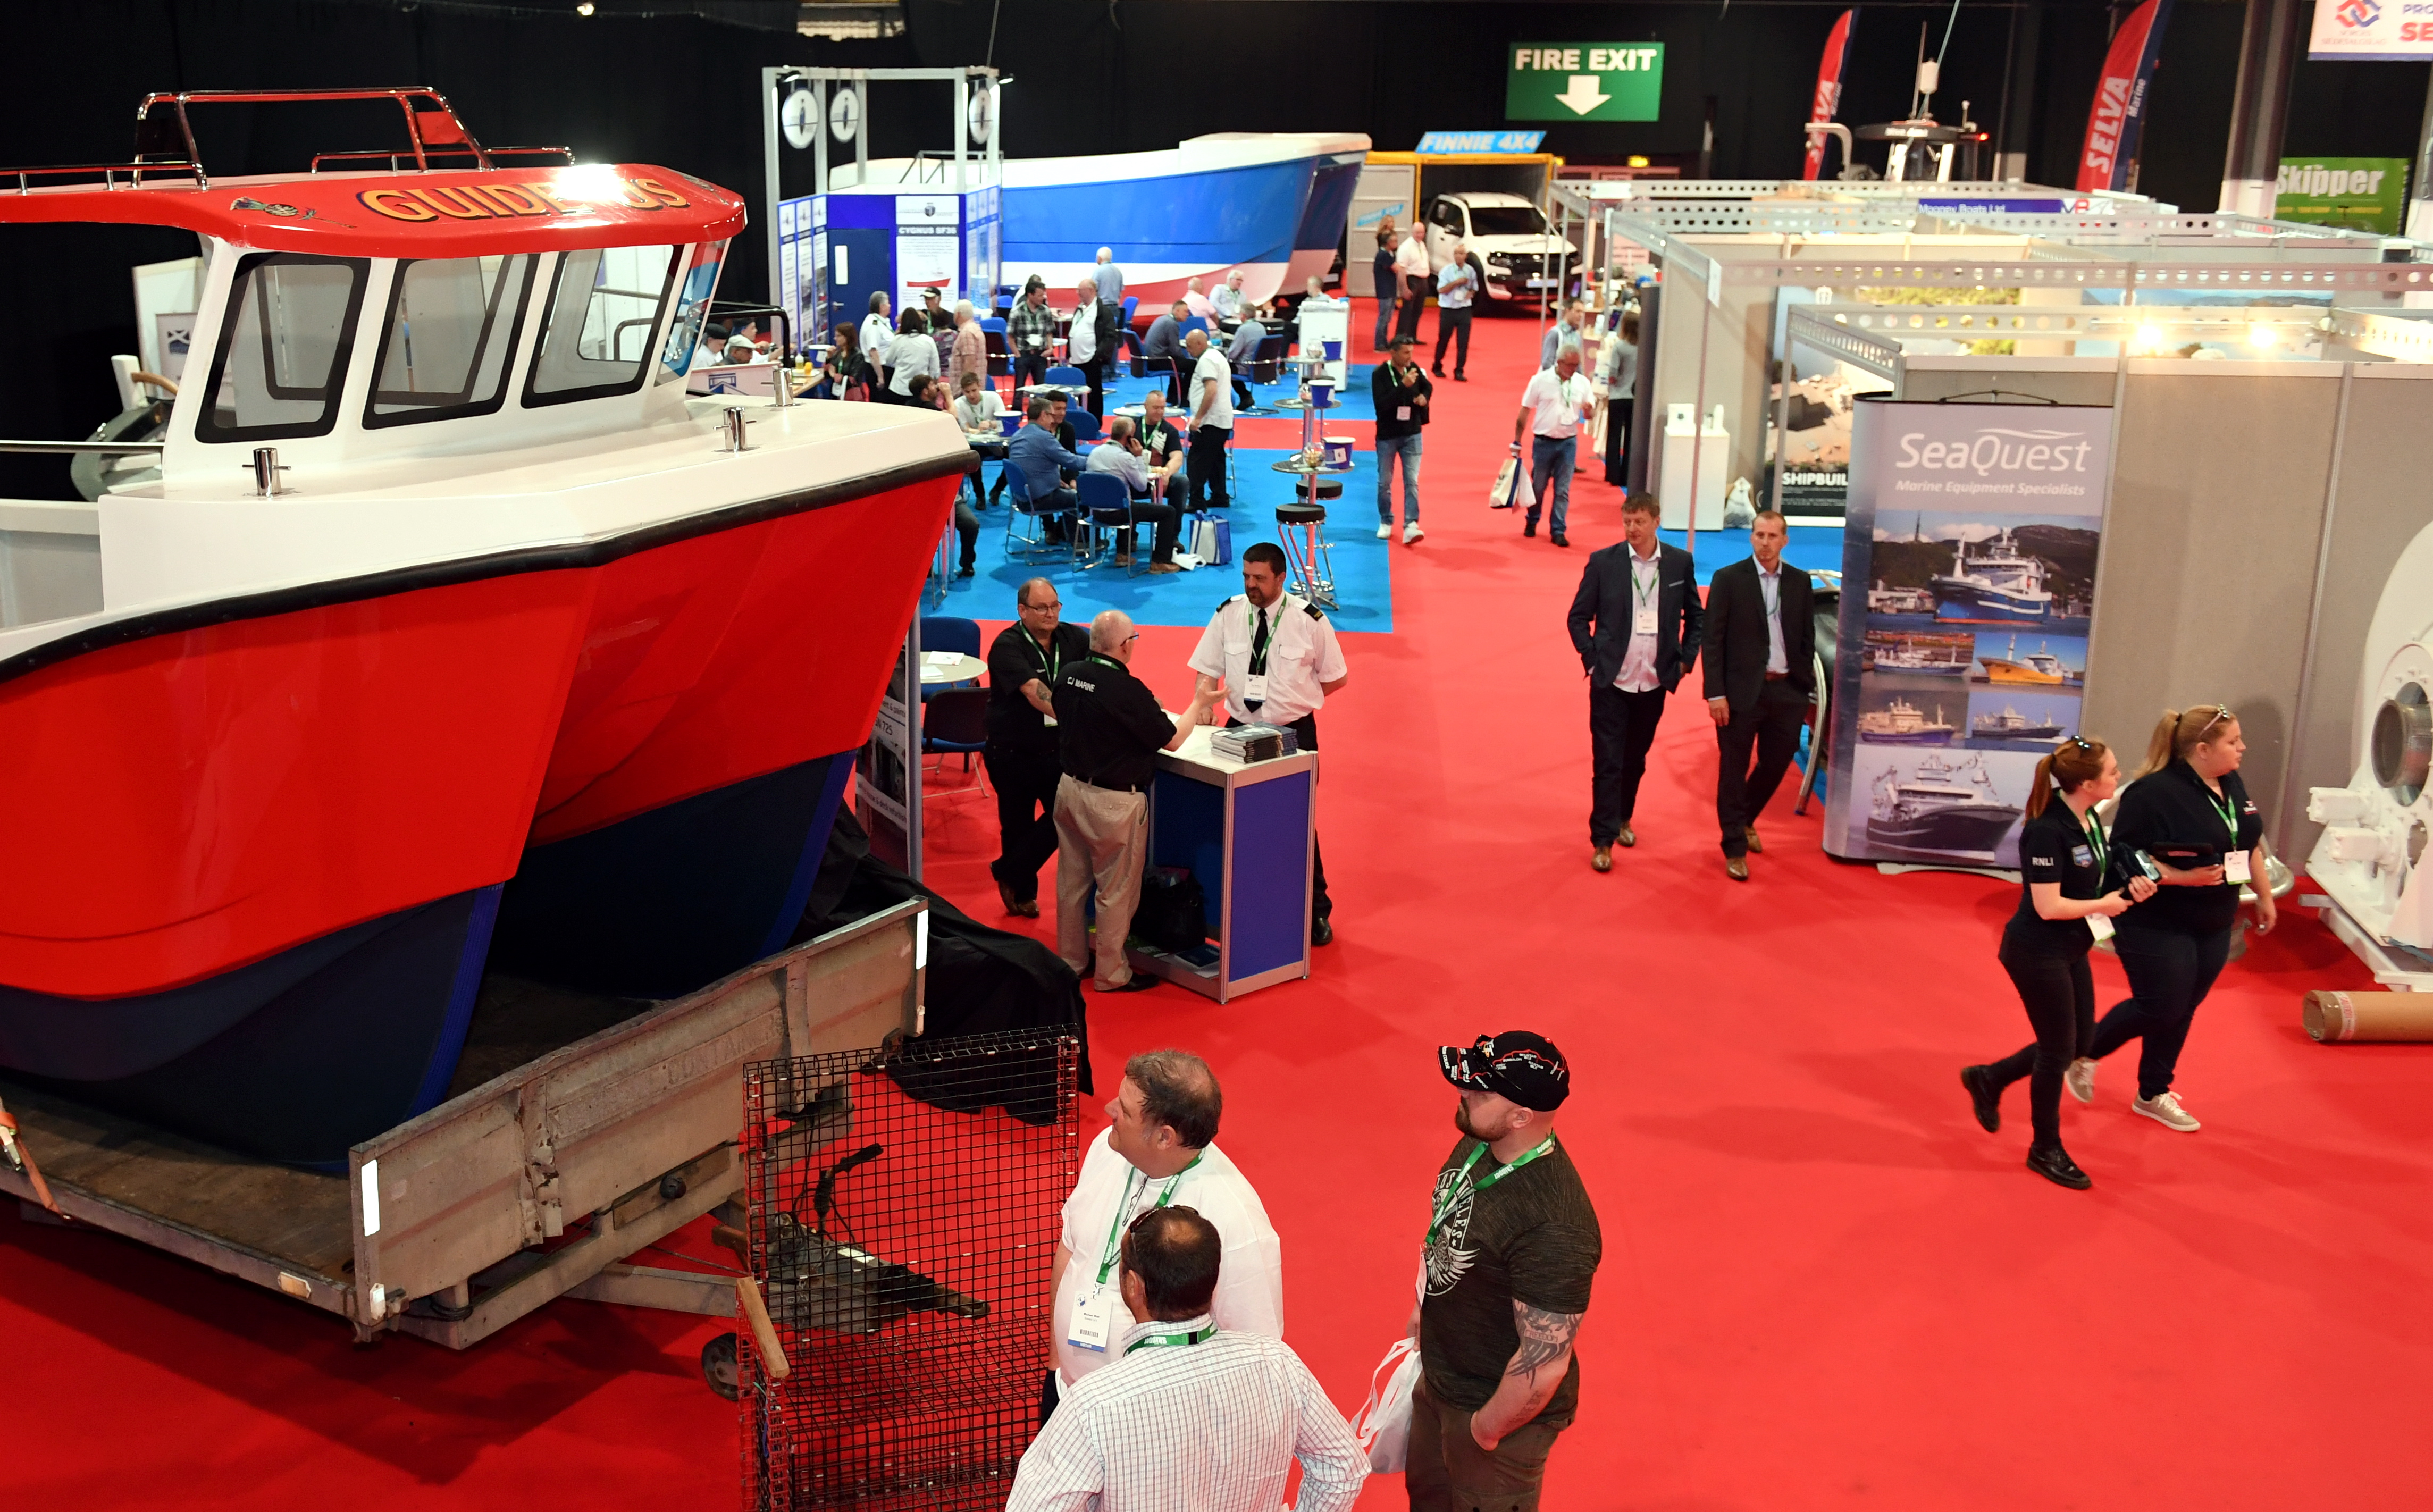 Skipper Expo at the AECC.    Pictured - GV.     Picture by Kami Thomson    26-05-17